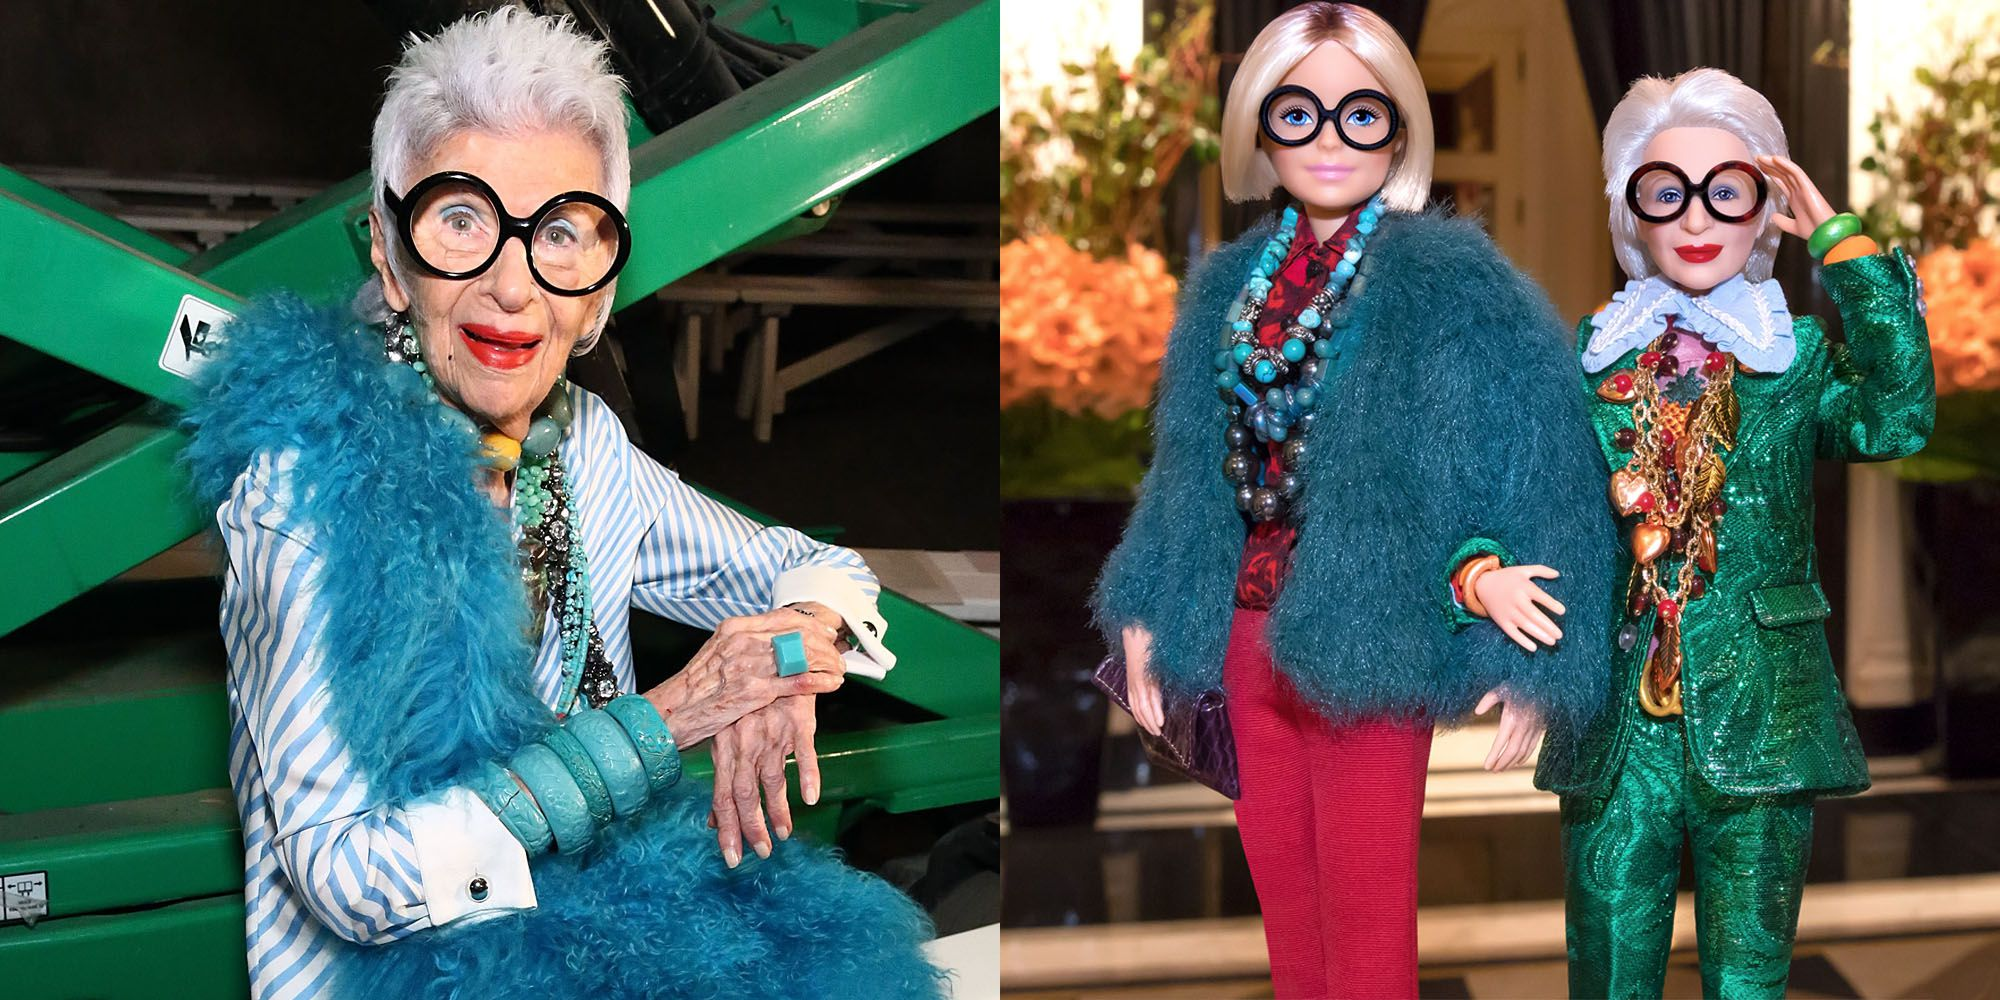 hbz-iris-apfel-barbie-index1-1522270130.jpg